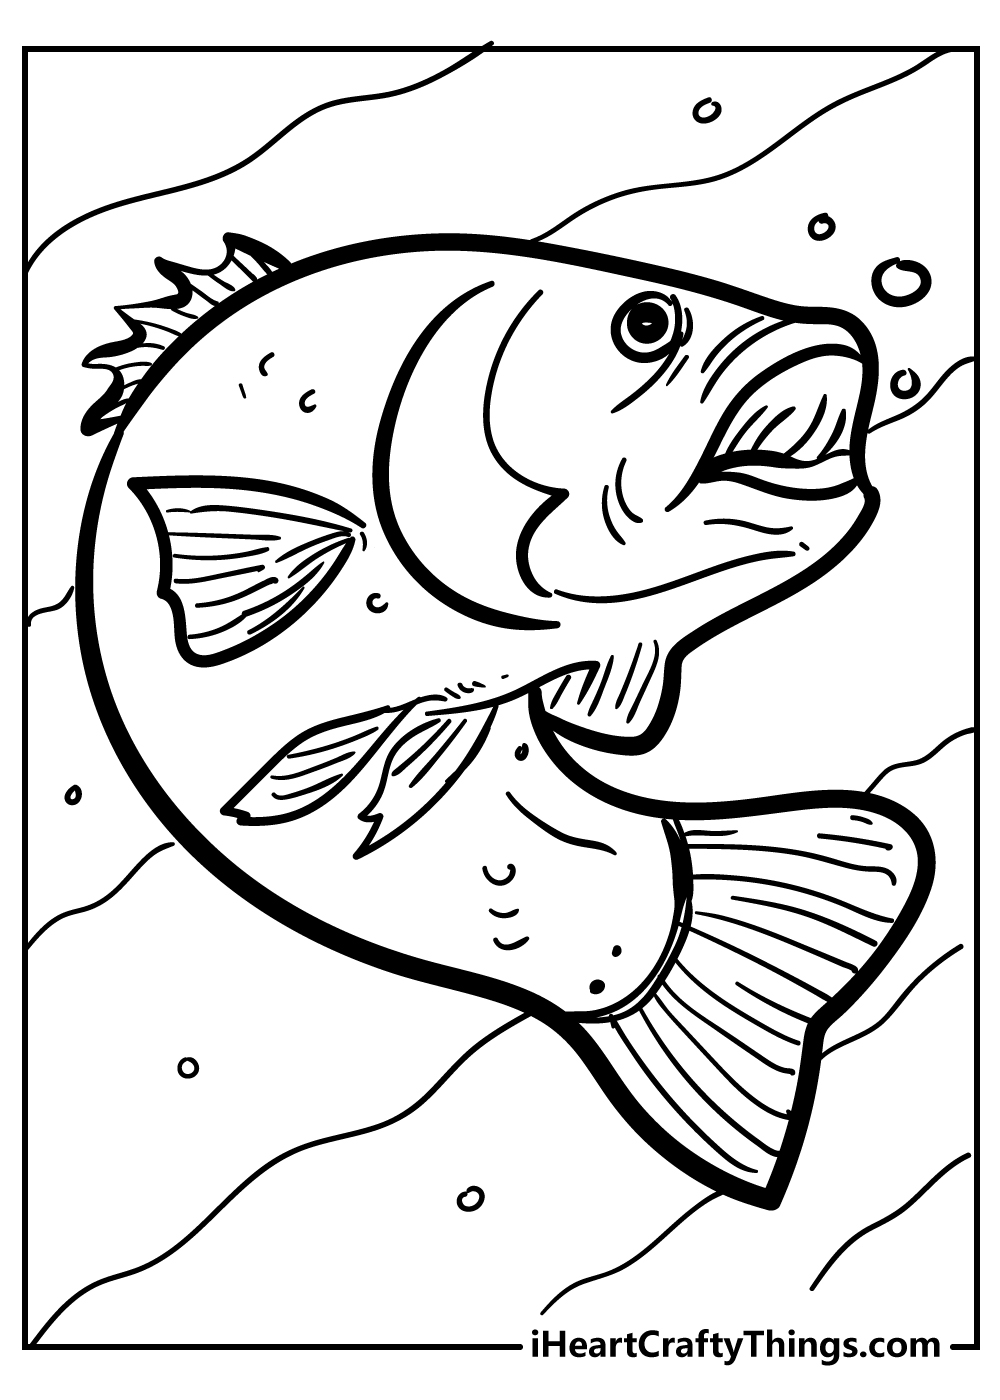 easy fish coloring pages free download